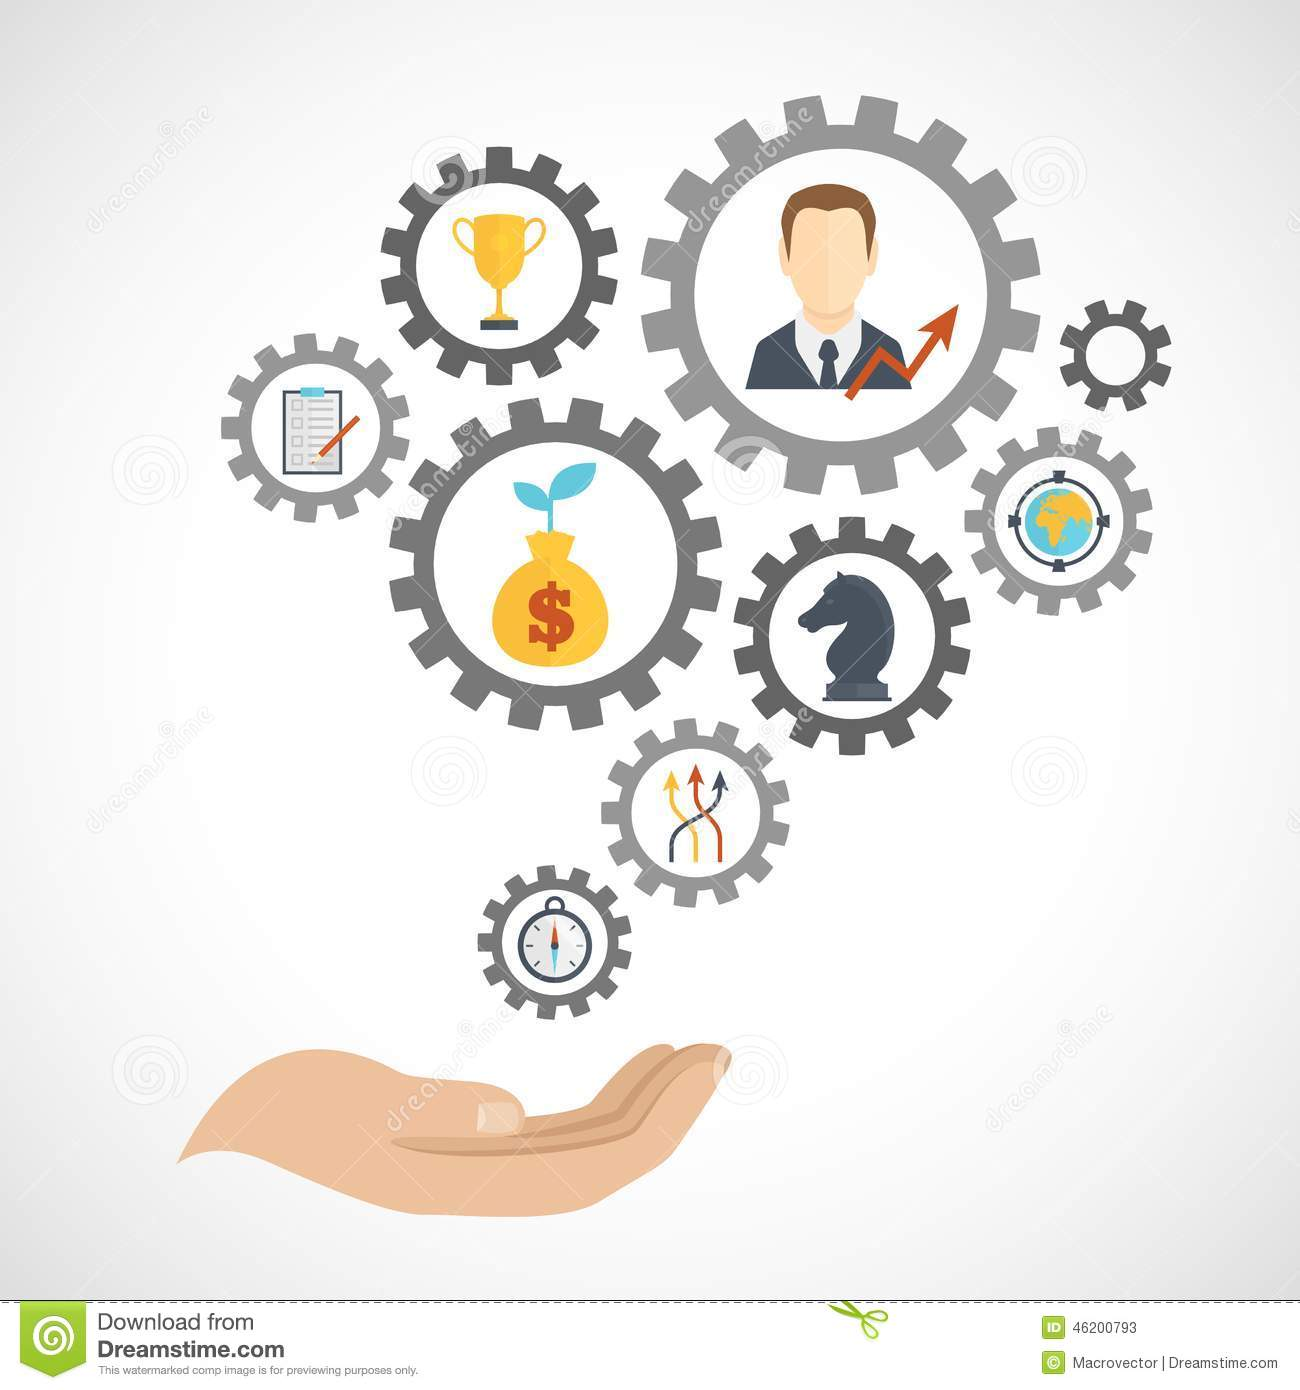 Stock Illustration D Man Report Concept White Background Front Angle View Image40945233 moreover Stock Illustration Business Strategy Planning Icon Flat Concept Hand Set Gears Vector Illustration Image46200793 further What Is Lean in addition Paper 20161265373 together with That Time My Con Law Professor Put The Death Star On His Powerpoint. on operational concept cartoon